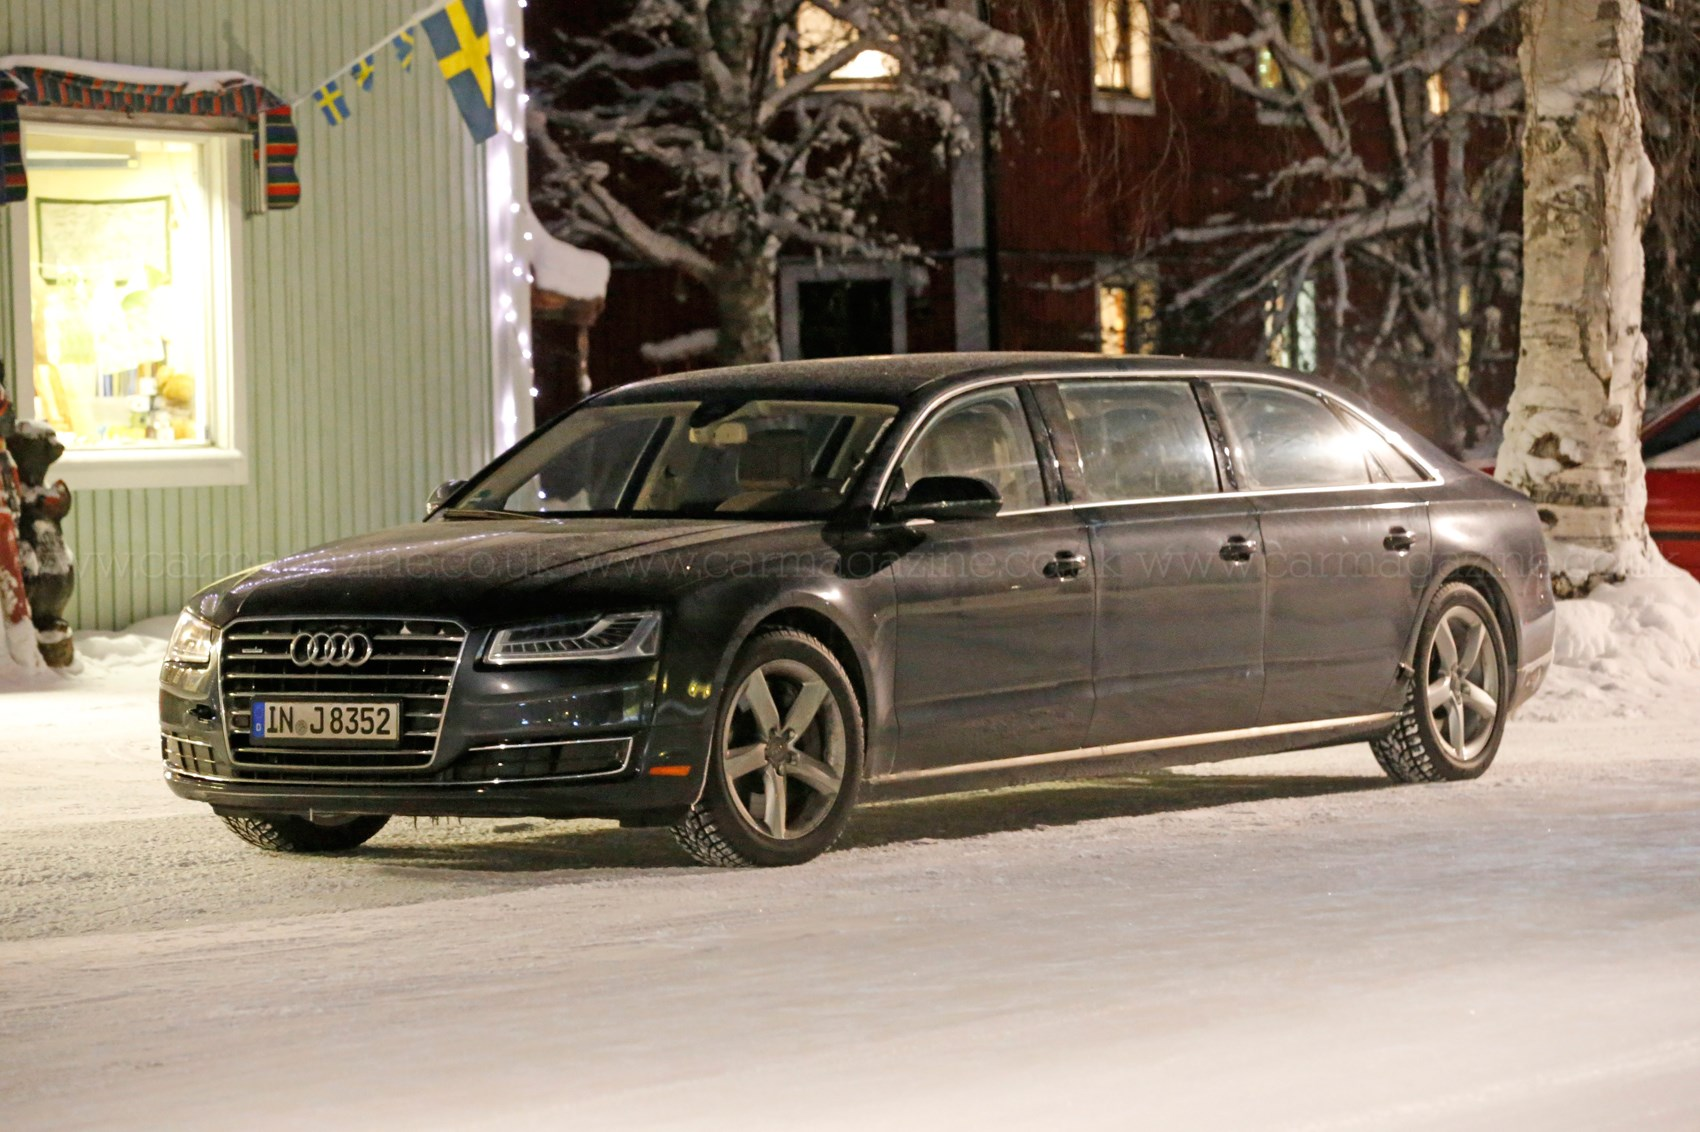 And Stretch Mystery Six Door Audi A8 Limo Spotted In Sweden By Car Magazine